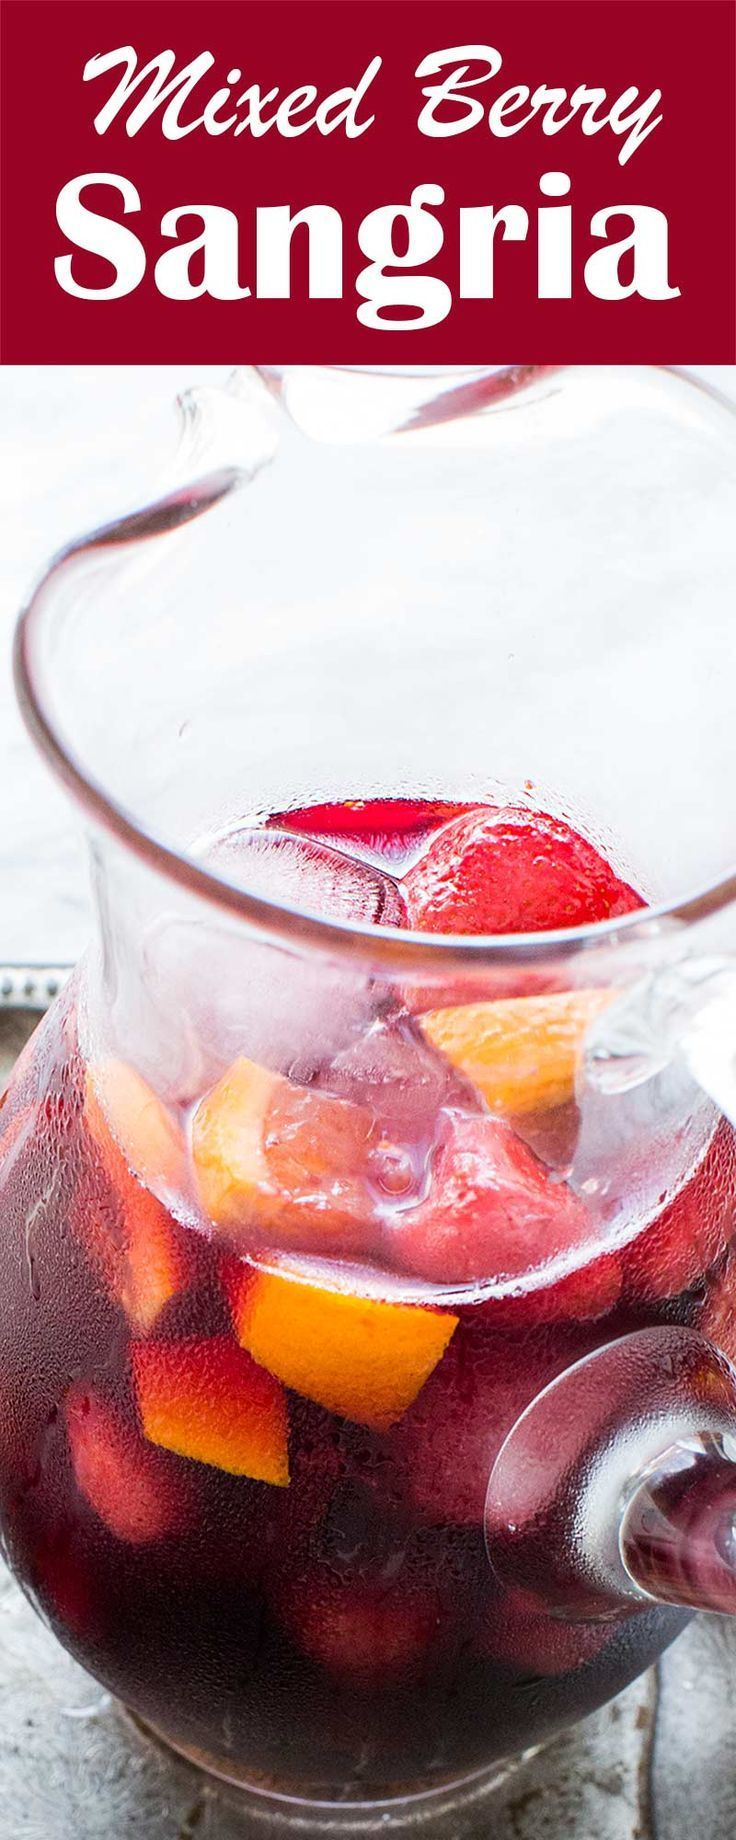 Mixed Berry Sangria Recipe With Images Red Wine Sangria Berry Sangria Sangria Recipes